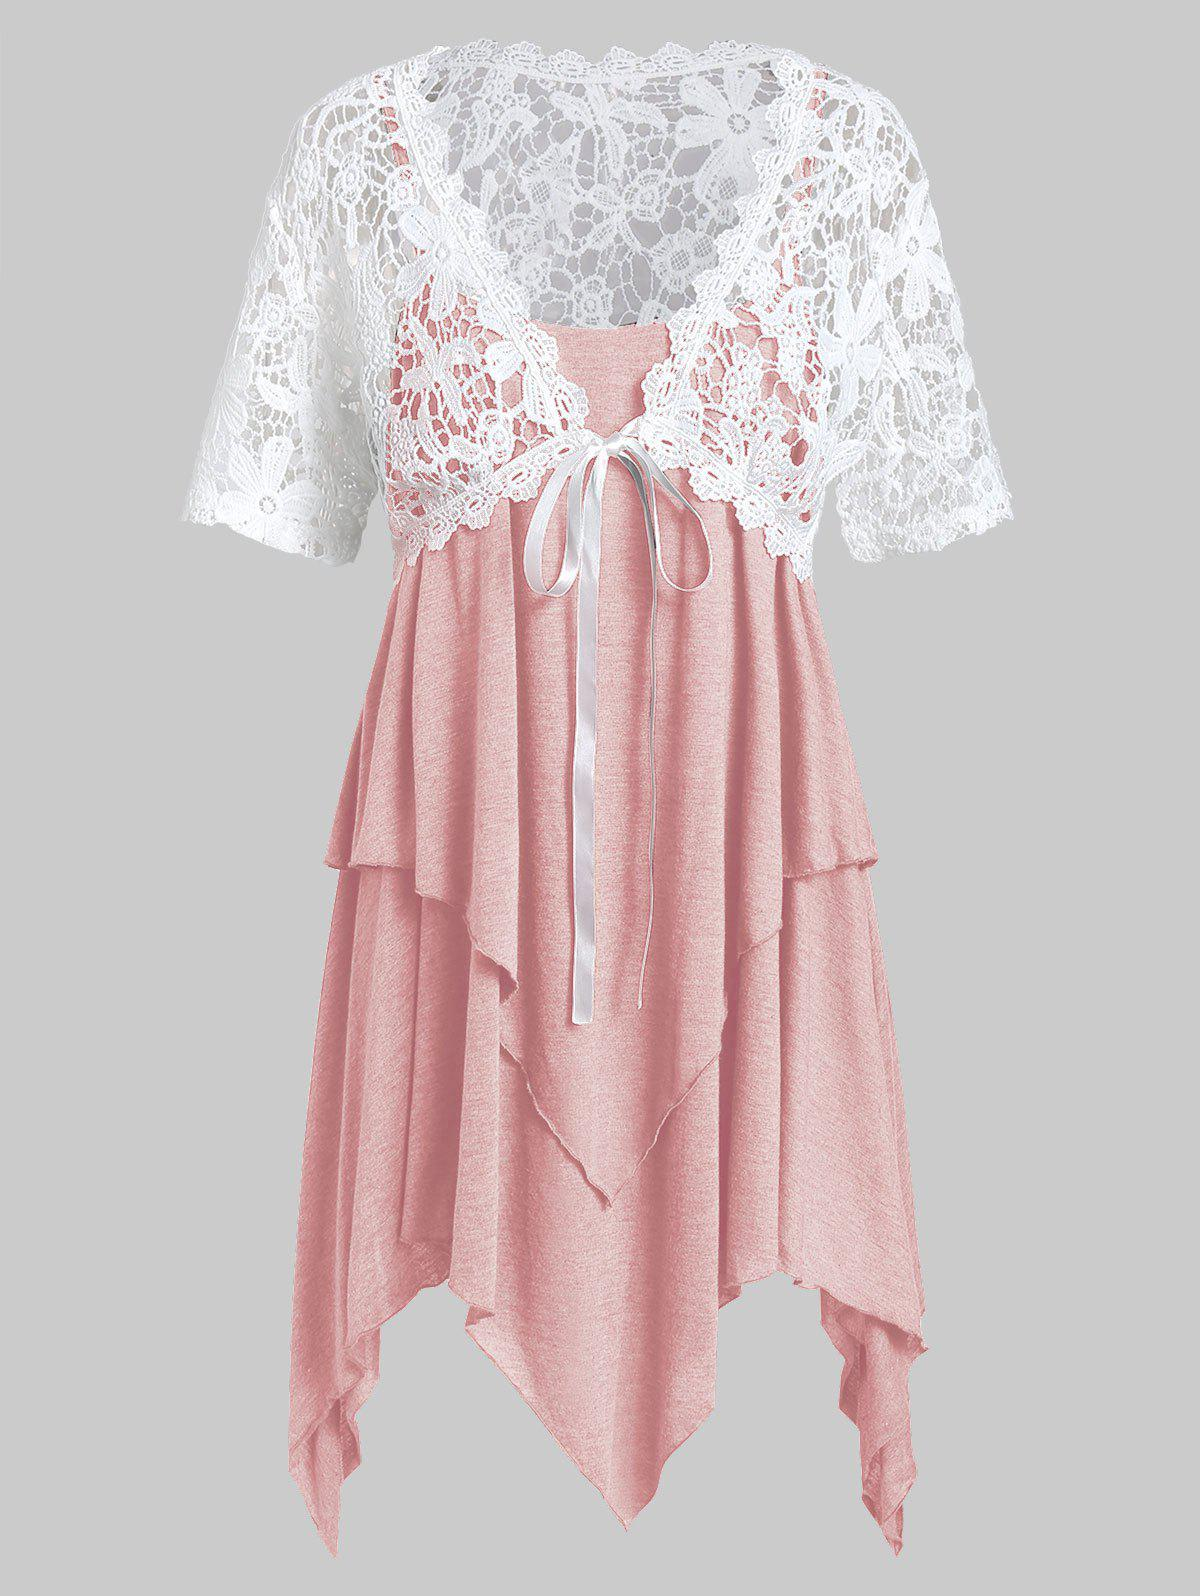 Plus Size Lace Top With Handkerchief Layered Cami Top Twinset